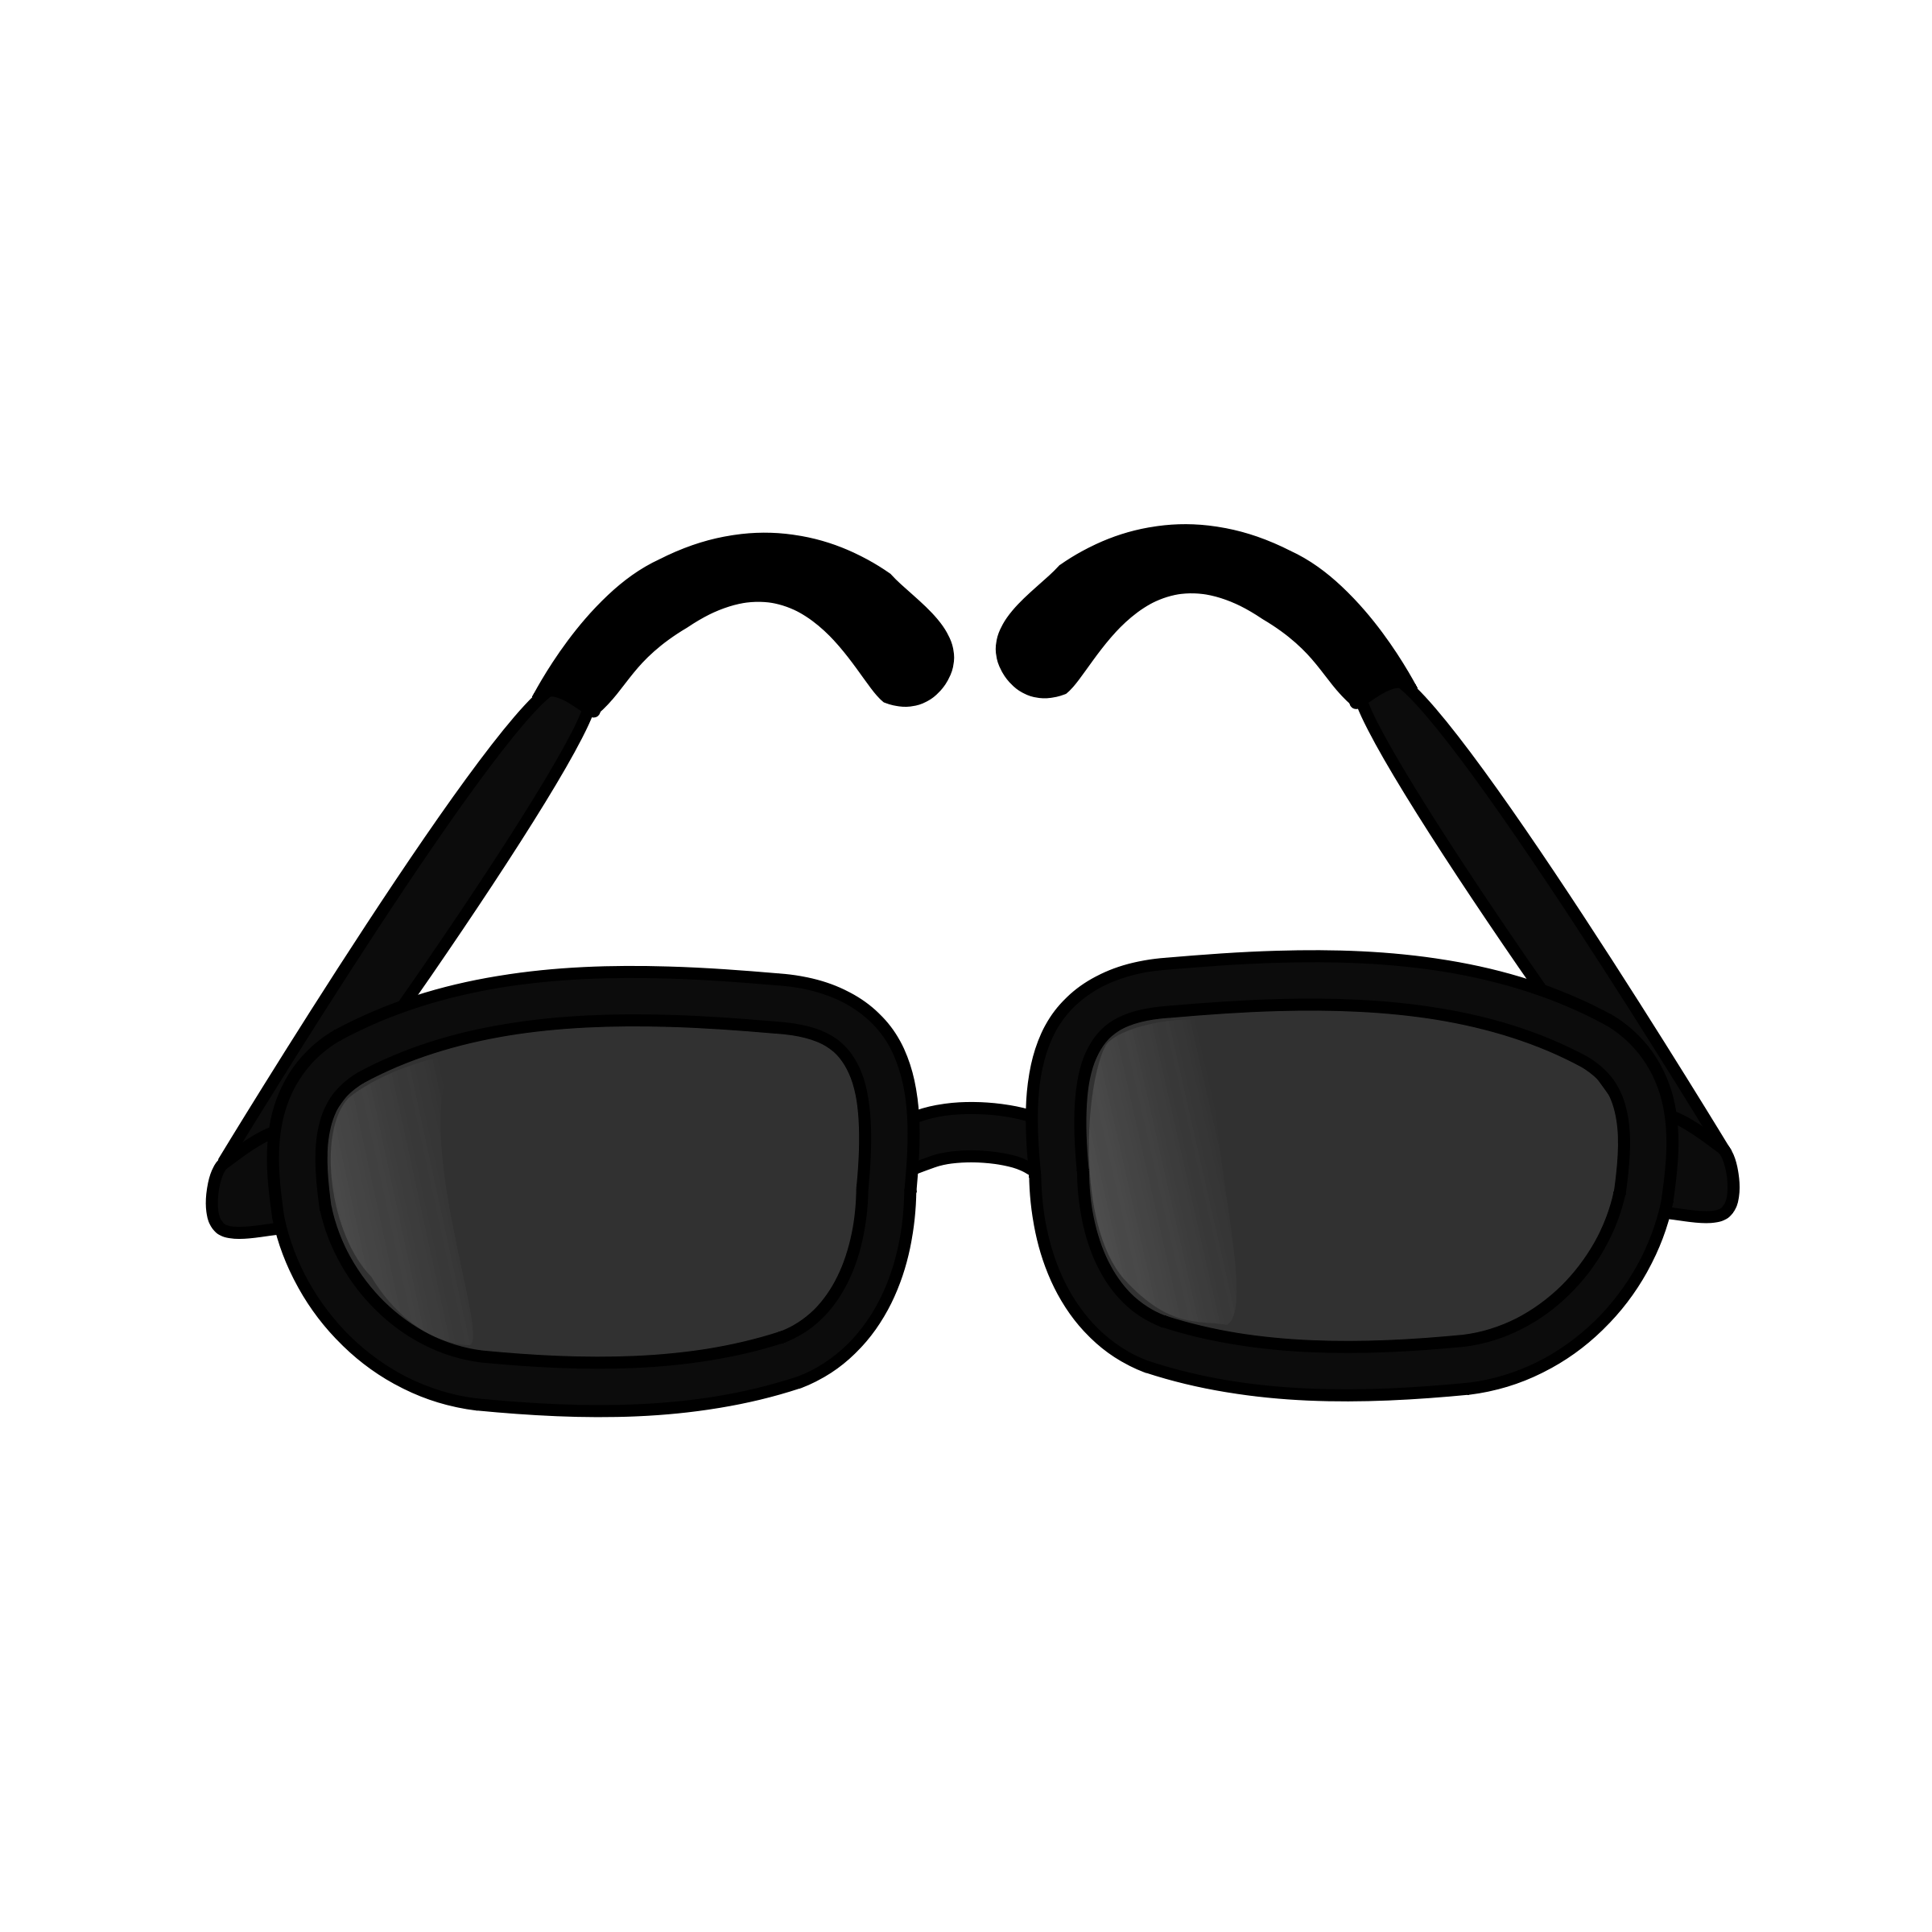 Spiderman clipart svgz Glasses collection Clip svgz Free